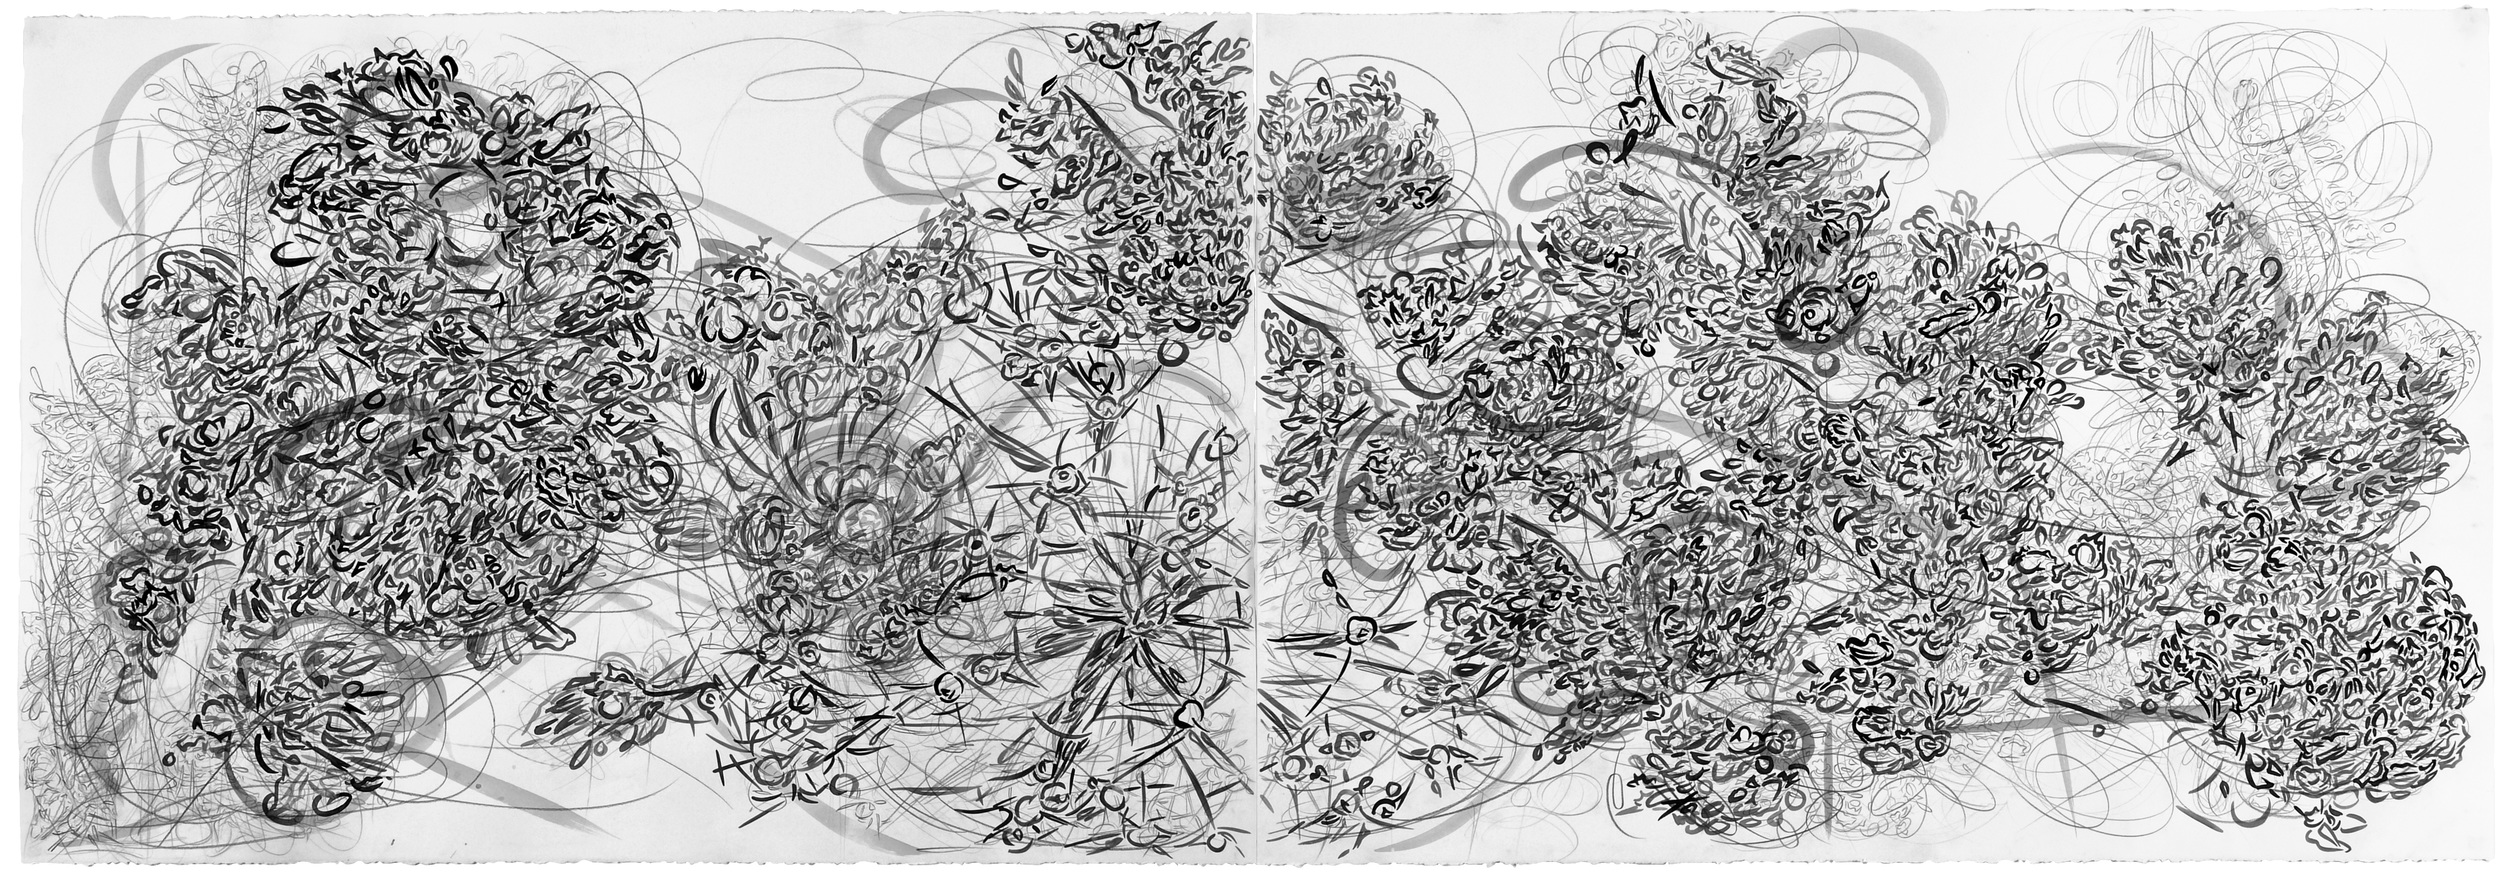 "Volitia and the Red Bud: Misery Loves Company,  2012, pencil and gouache on paper, 30"" x 88"""